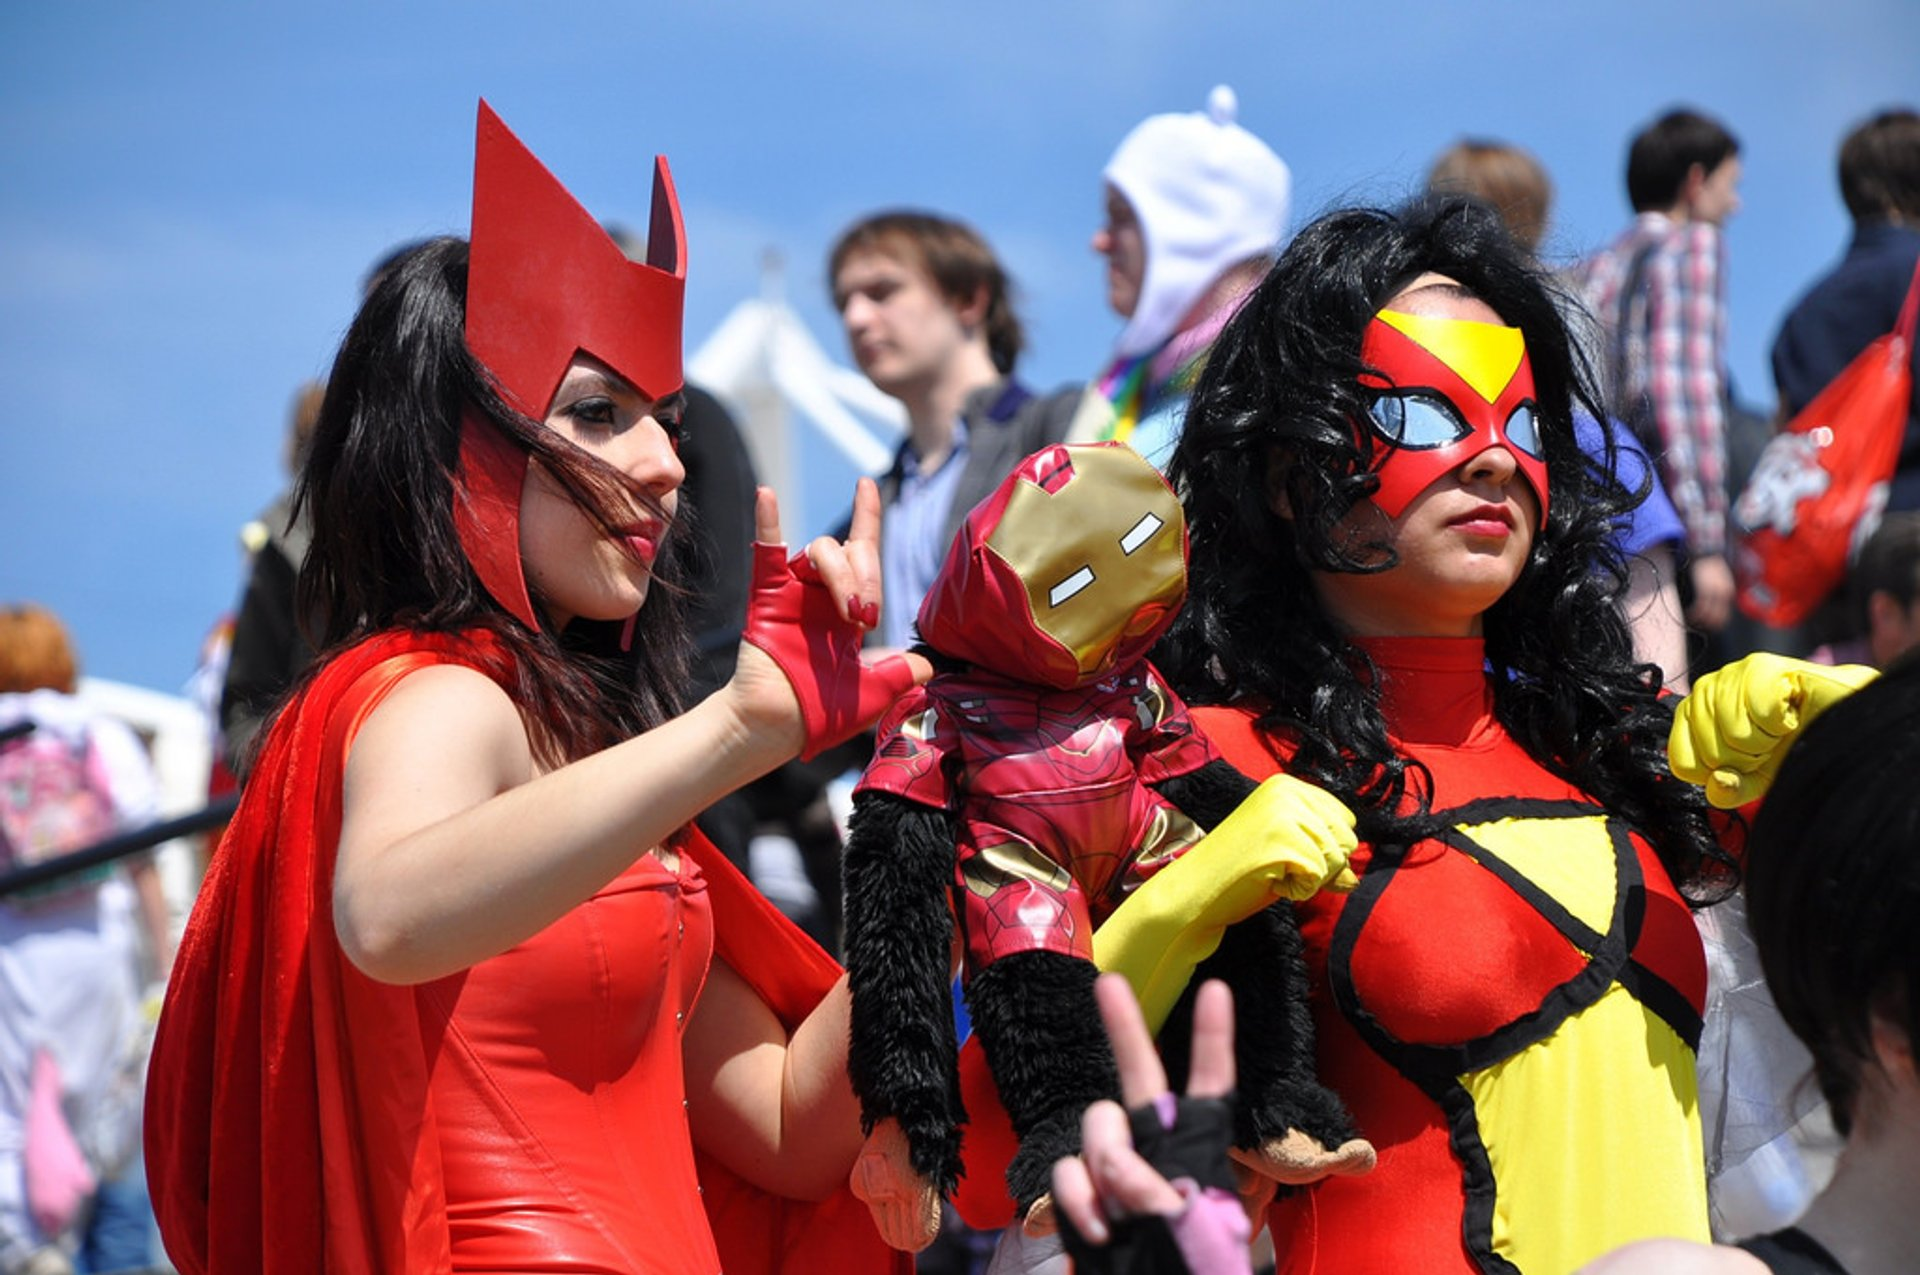 MCM London Comic Con in London 2020 - Best Time